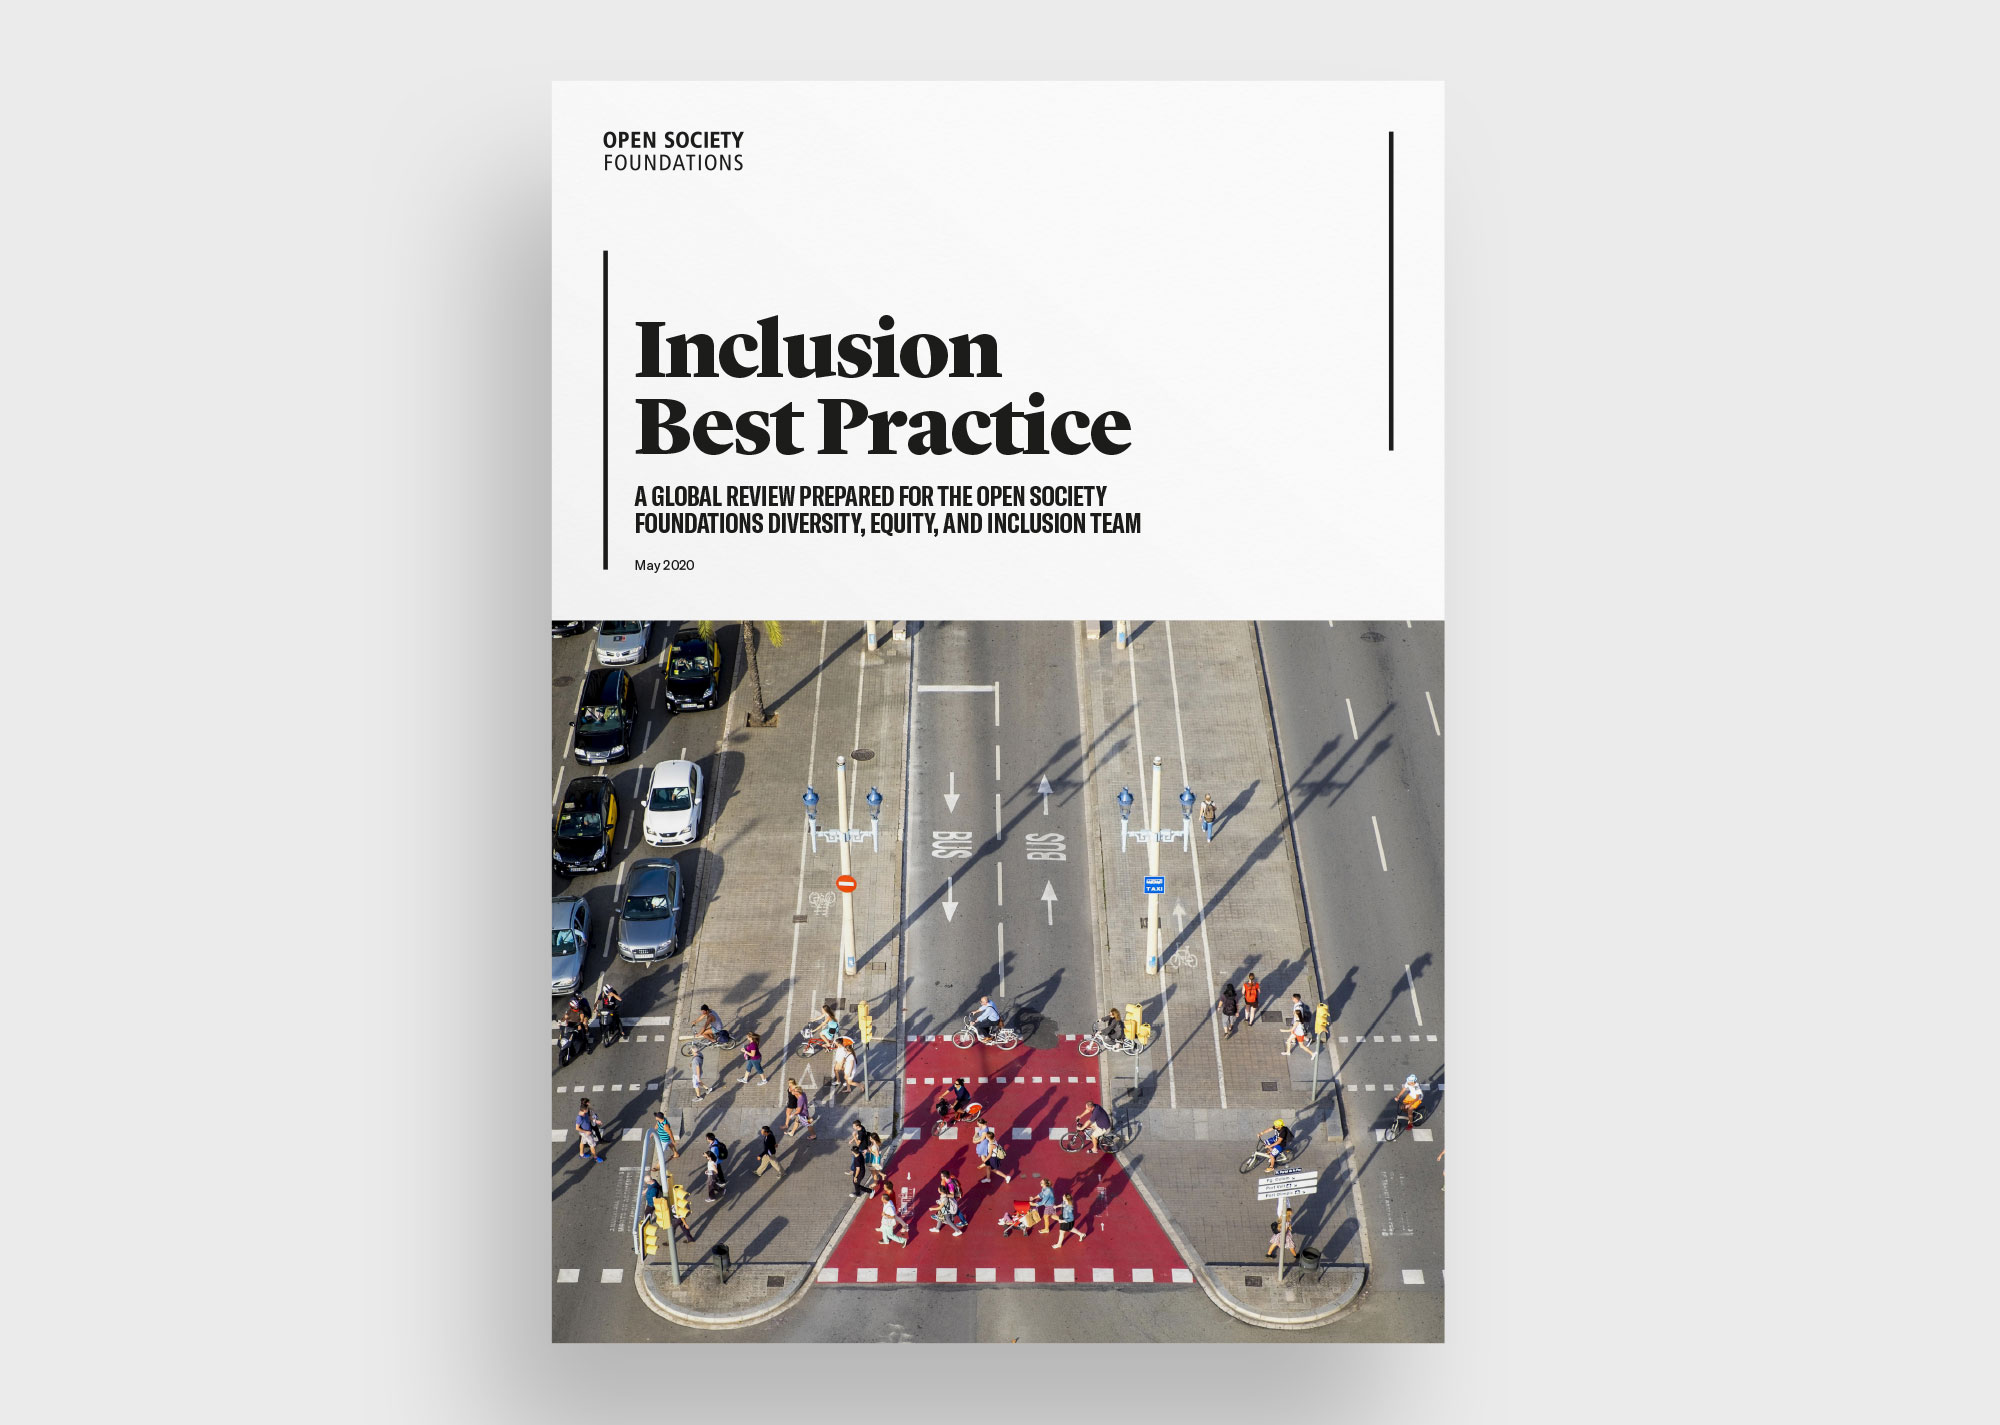 Open Society Foundations Inclusion Best Practice report cover